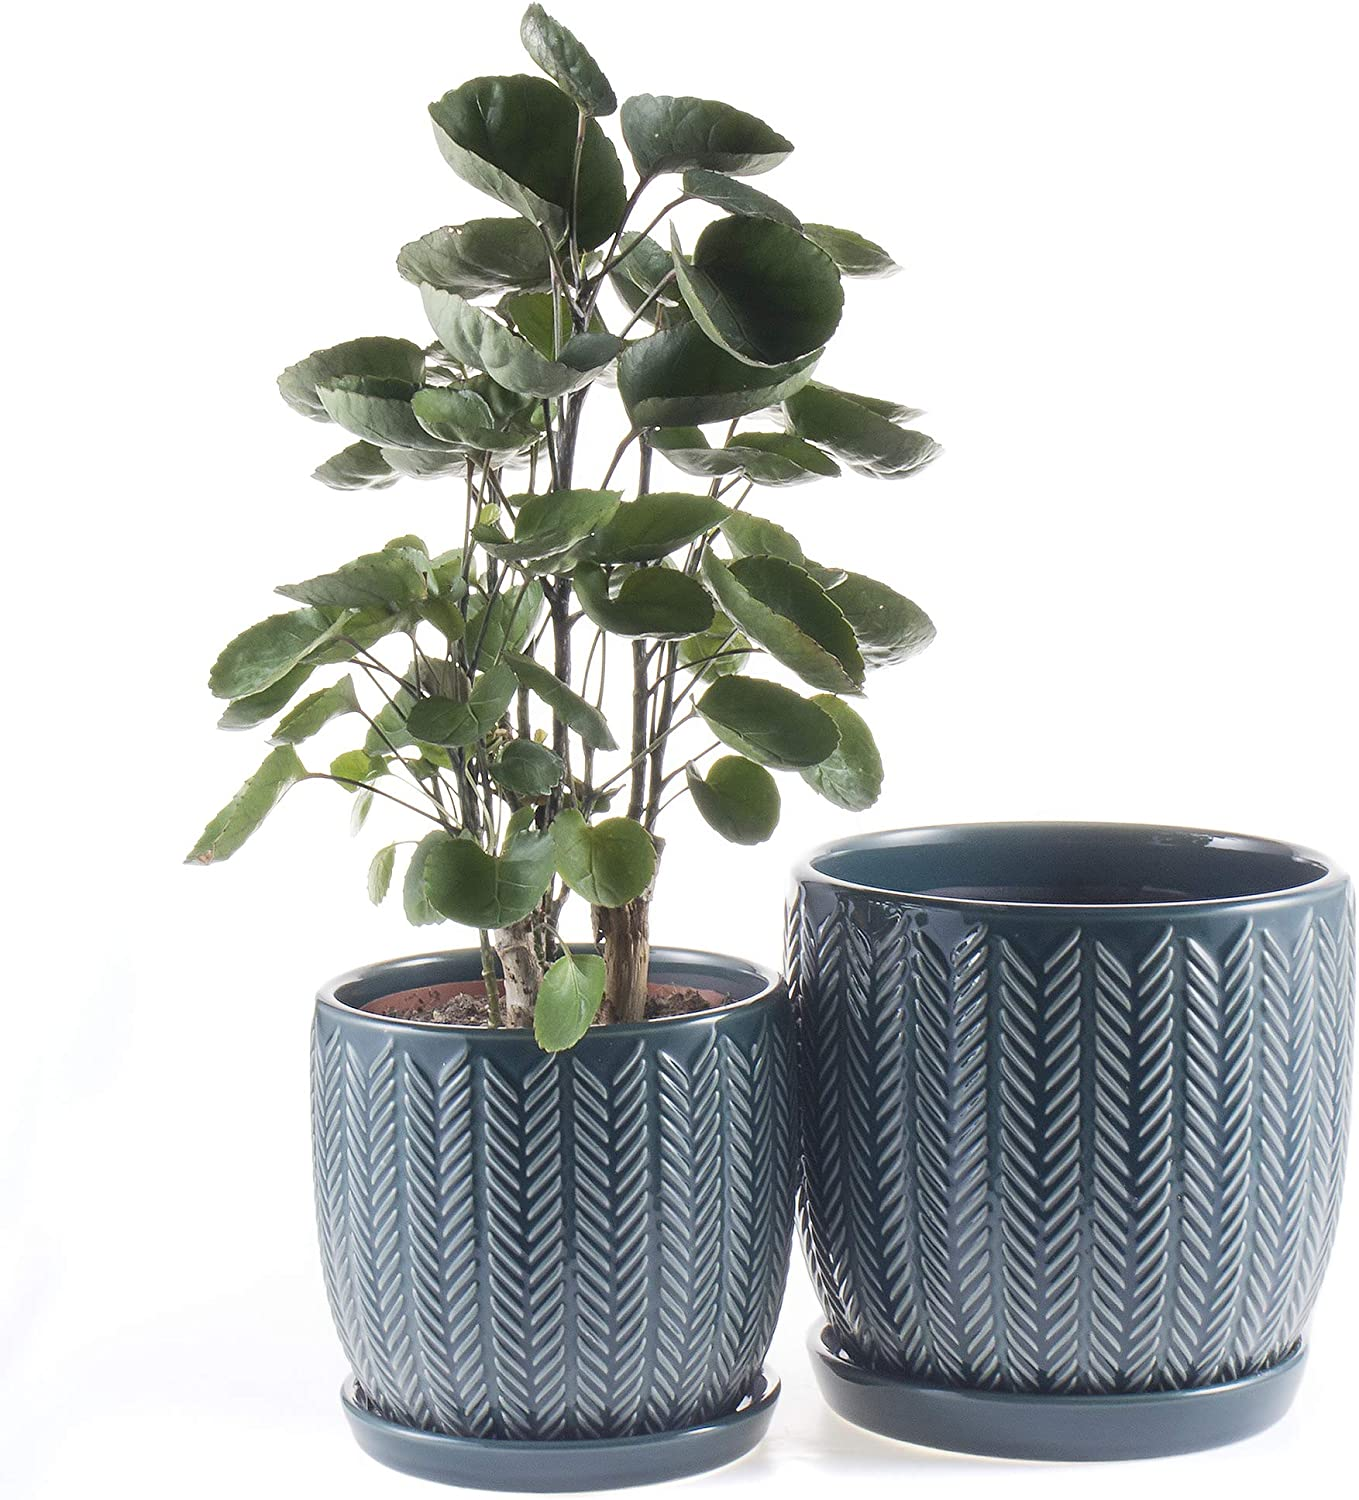 "Voeveca Ceramic Flower Pot Garden Planters 6.5"" and 5.5"" Set of 2 Indoor Outdoor, Modern Nordic Style Plant Containers (Gereen)"